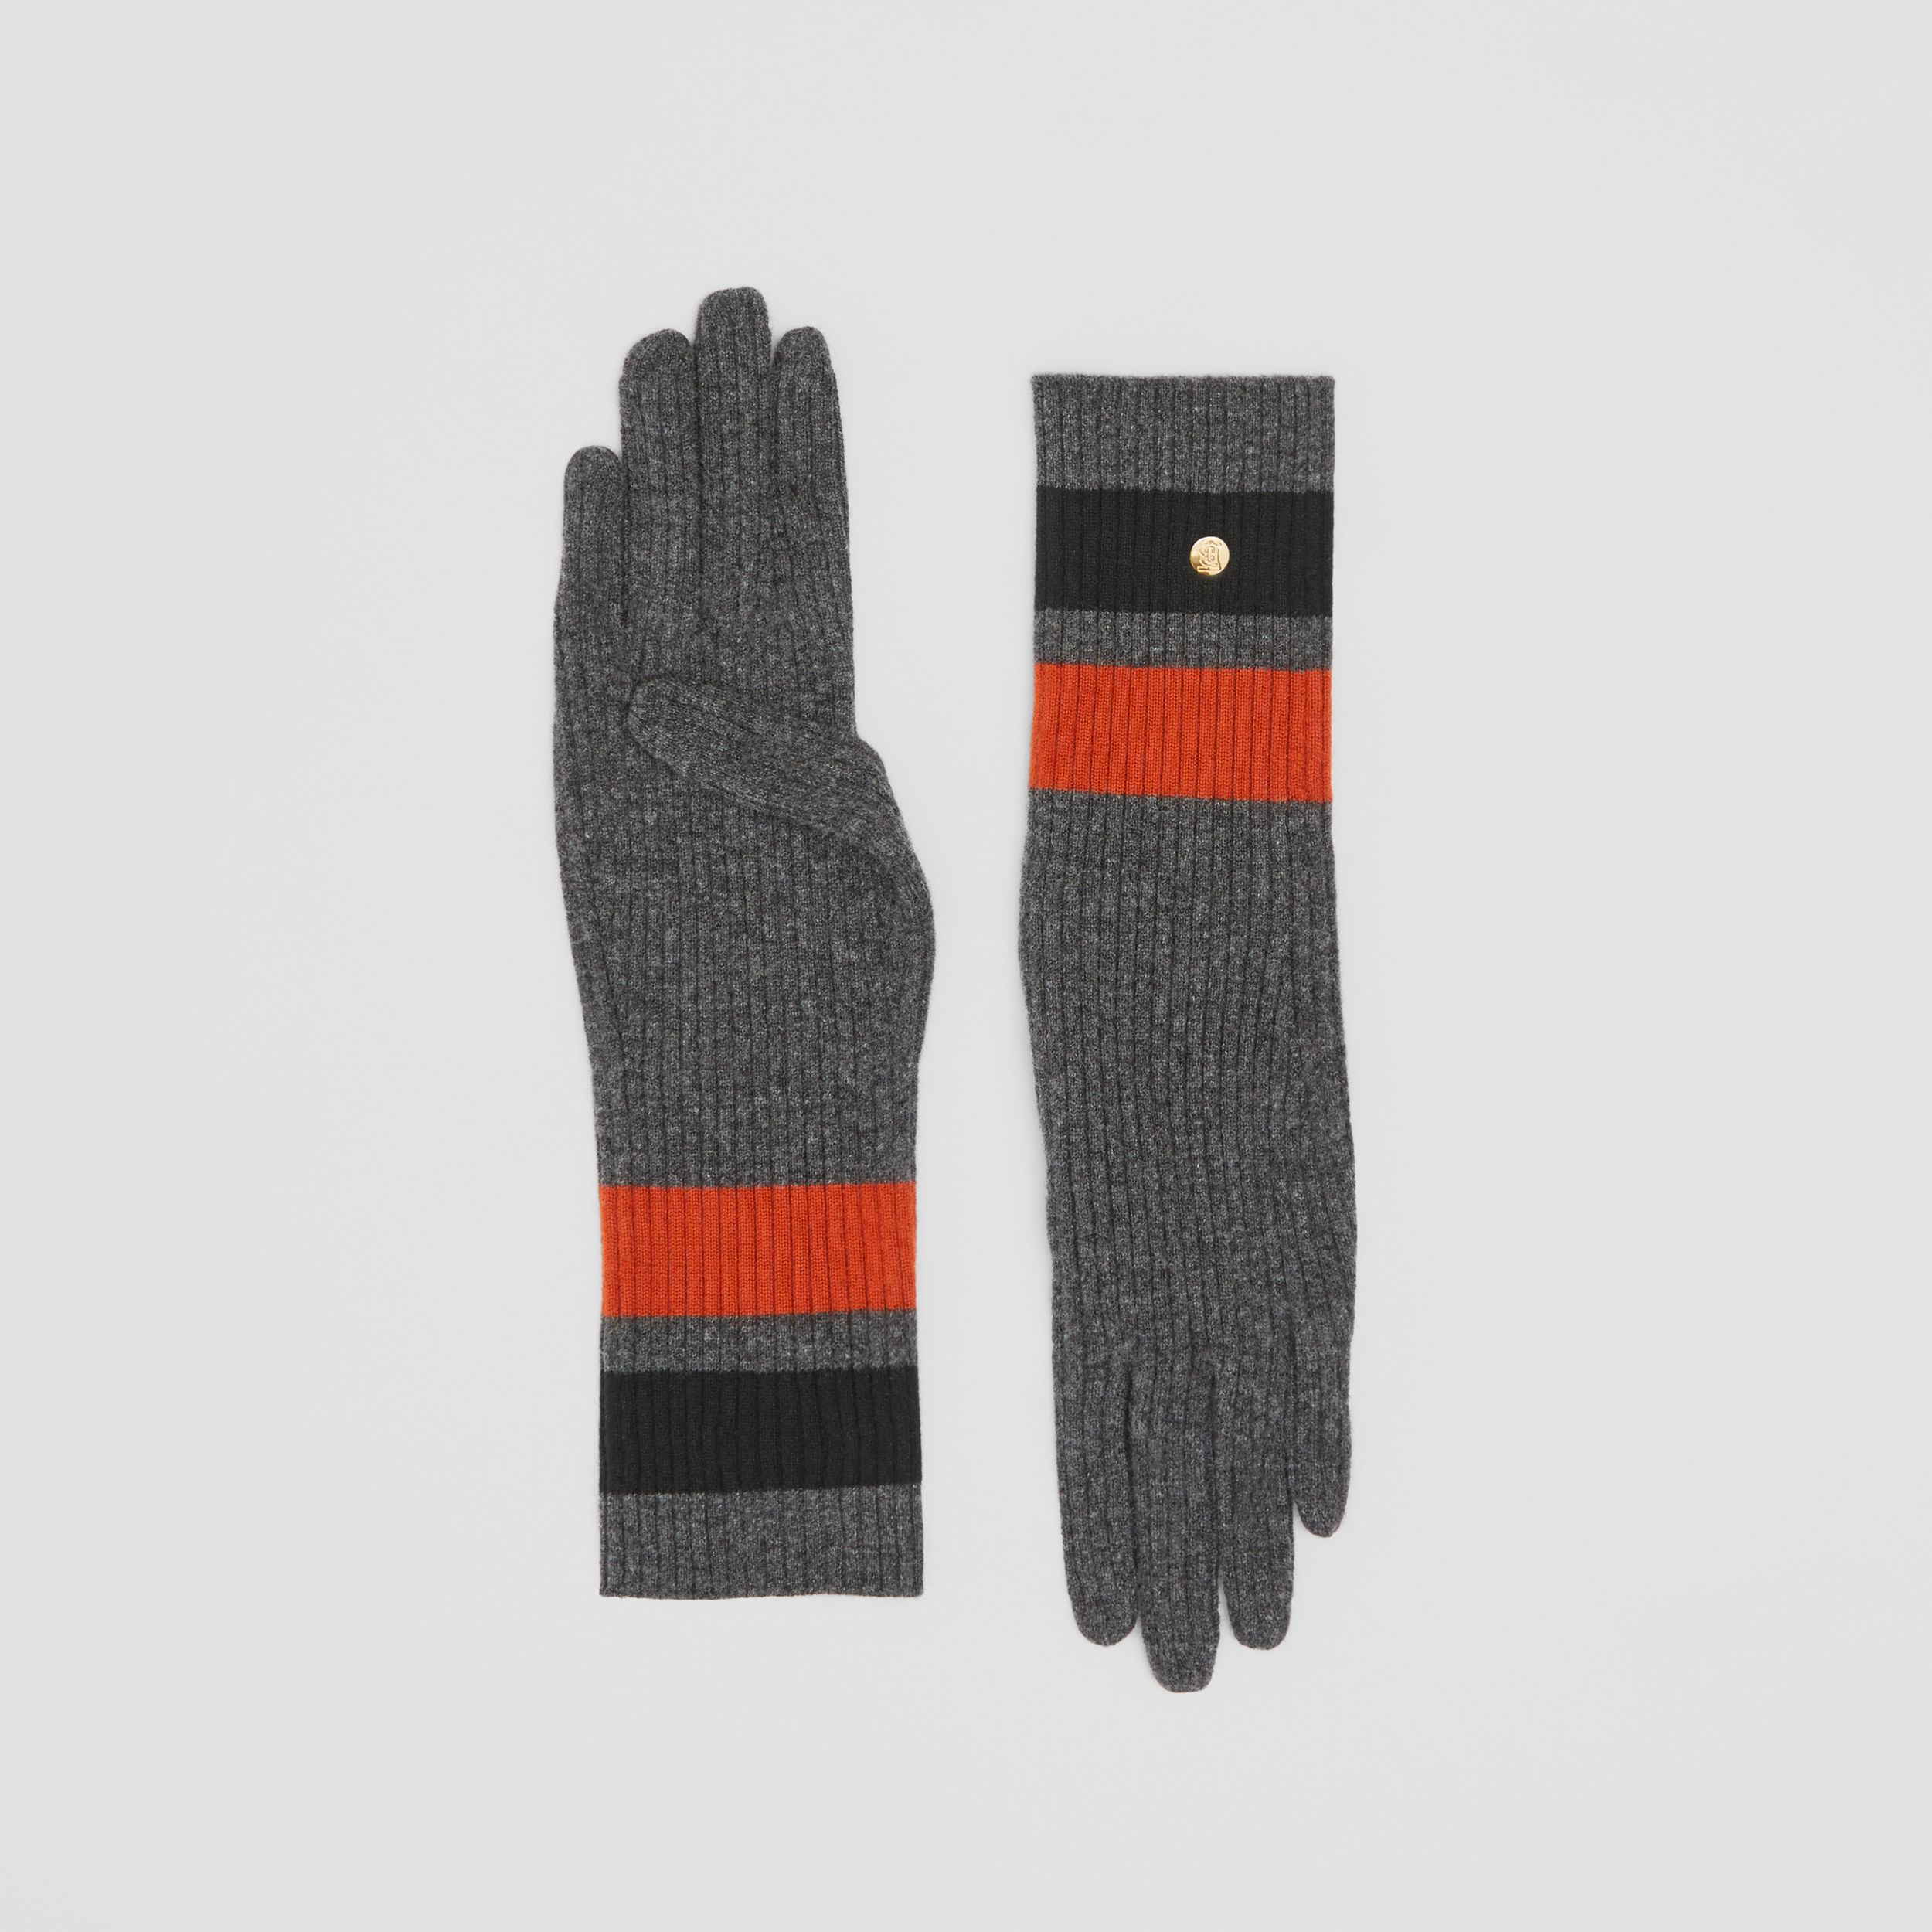 Monogram Motif Merino Wool Cashmere Gloves in Dark Grey | Burberry Canada - 1